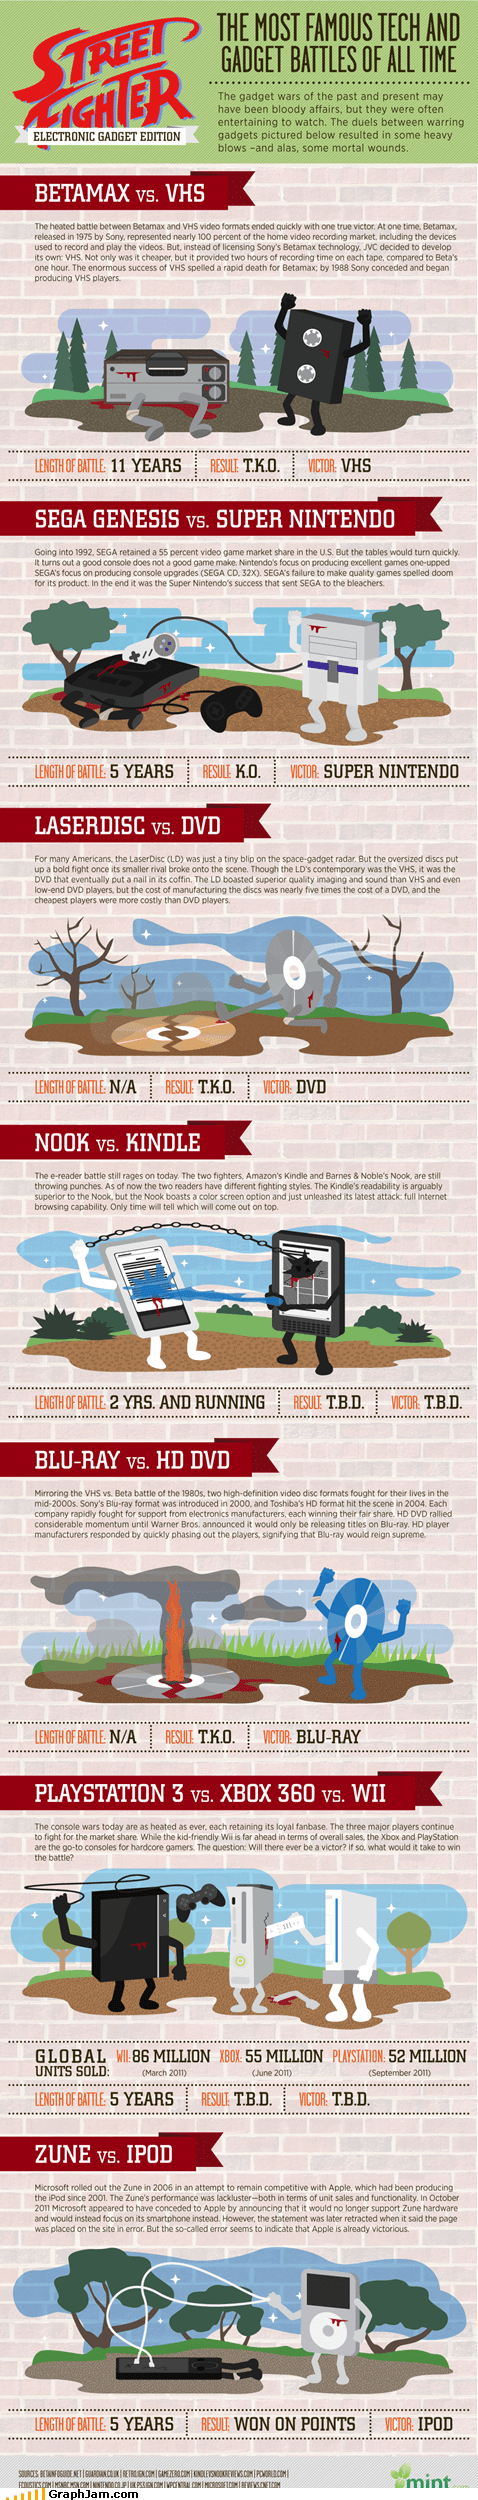 betamax blu ray infographic ipod kindle nook ps3 sega snes Street fighter wii xbox